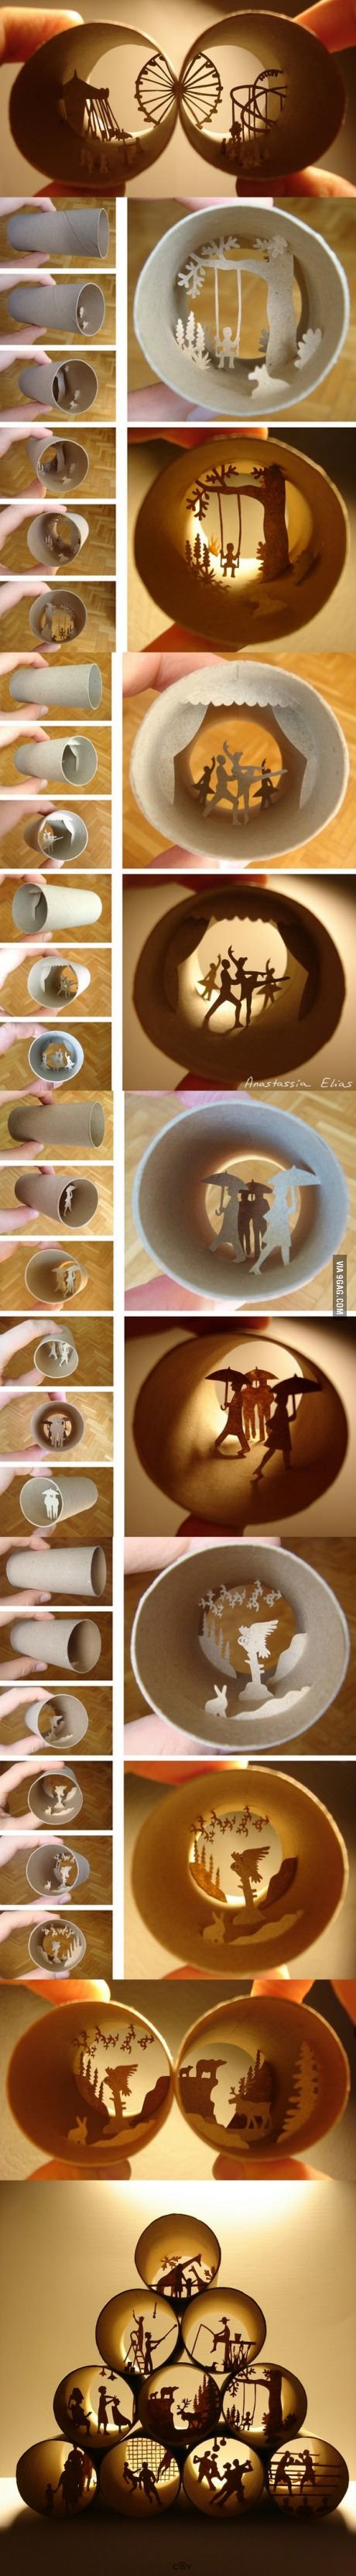 Toilet paper roll art by Anastassia Elias sweeeet